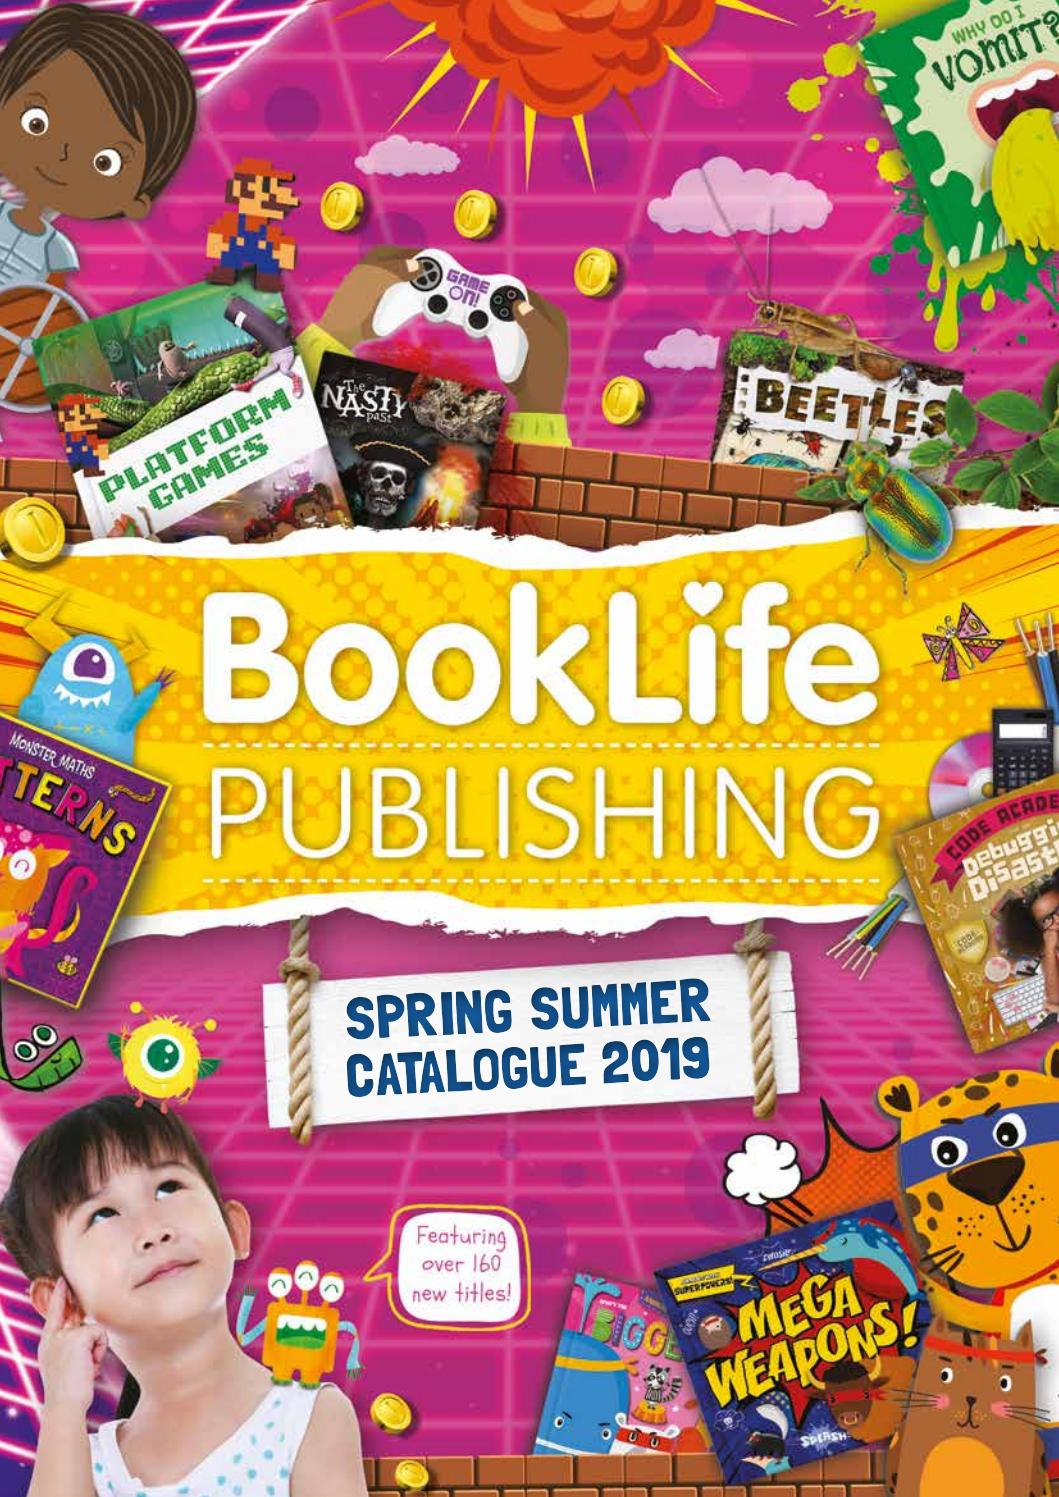 BookLife School Books and Resources